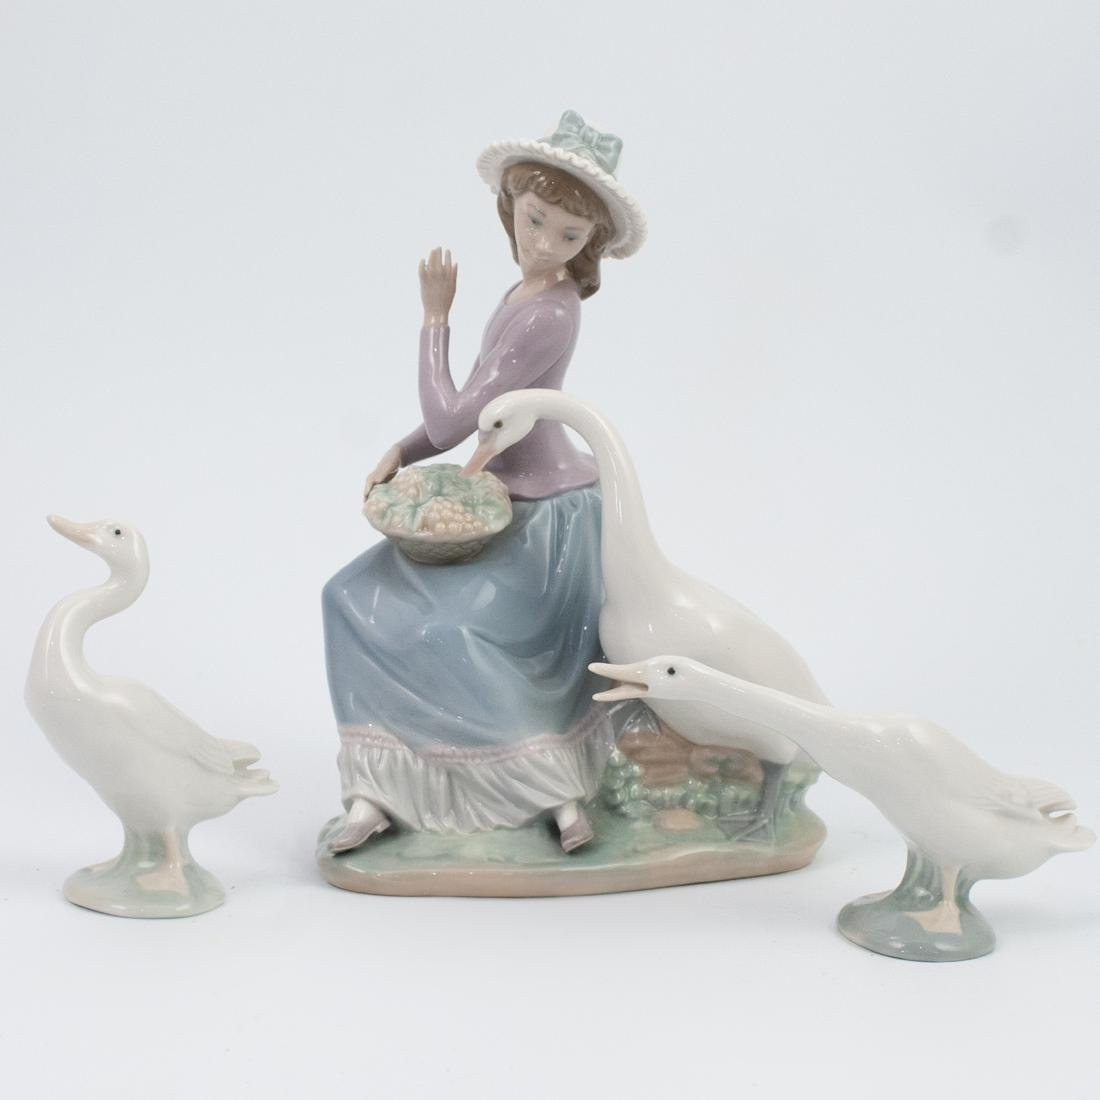 Lot of Three (3) Porcelain Lladro Figurines